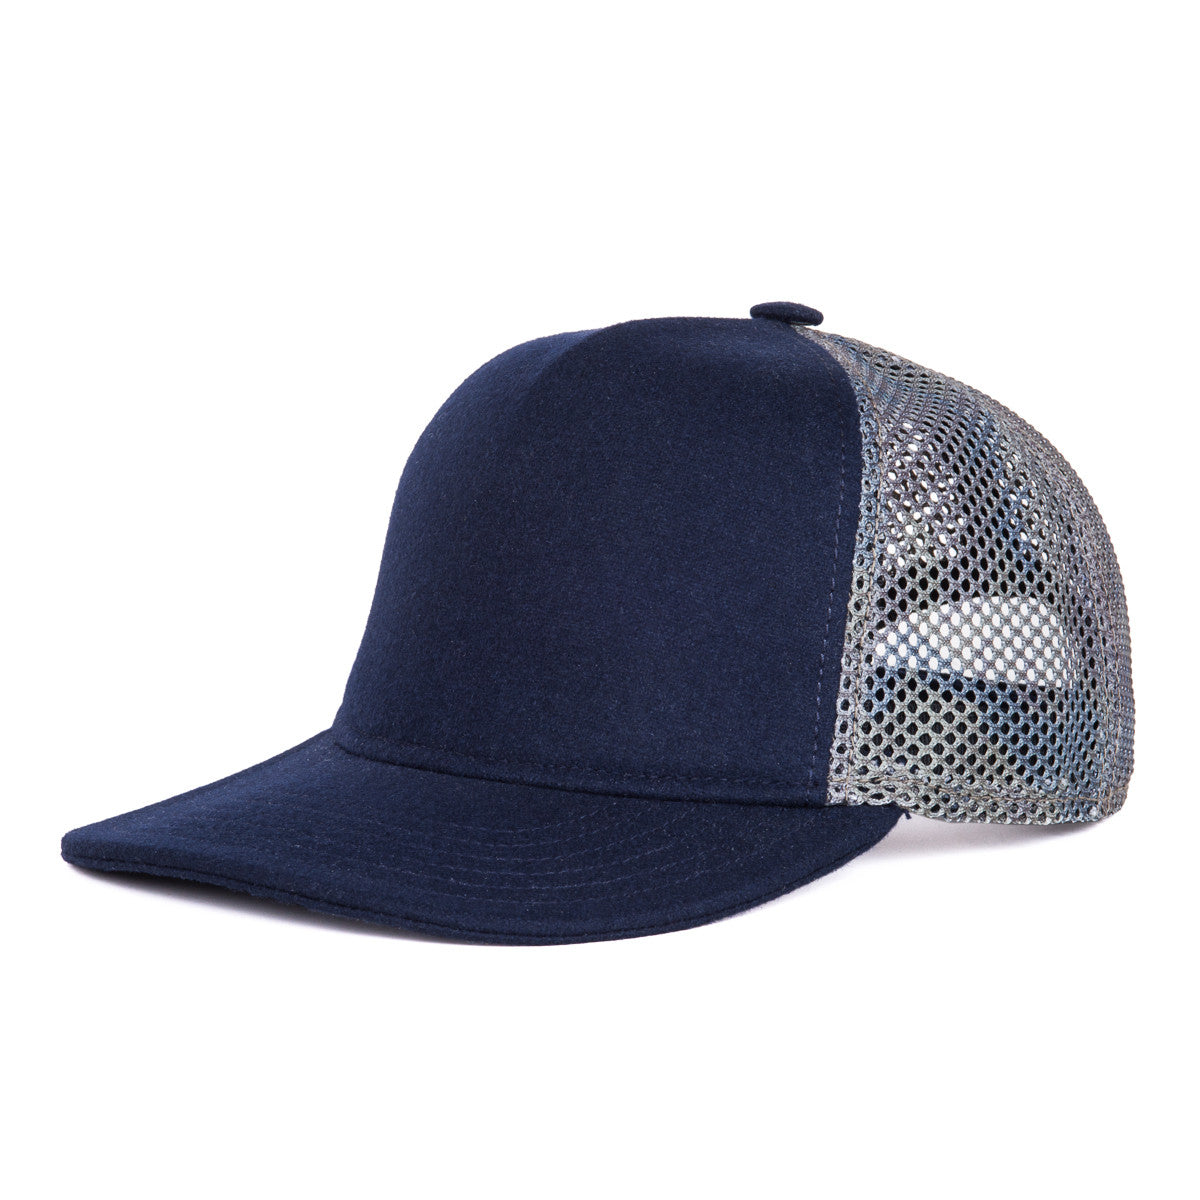 7c34b8aa3613d View Detail +. Faust Trucker Hat - Blue   light Camo ...